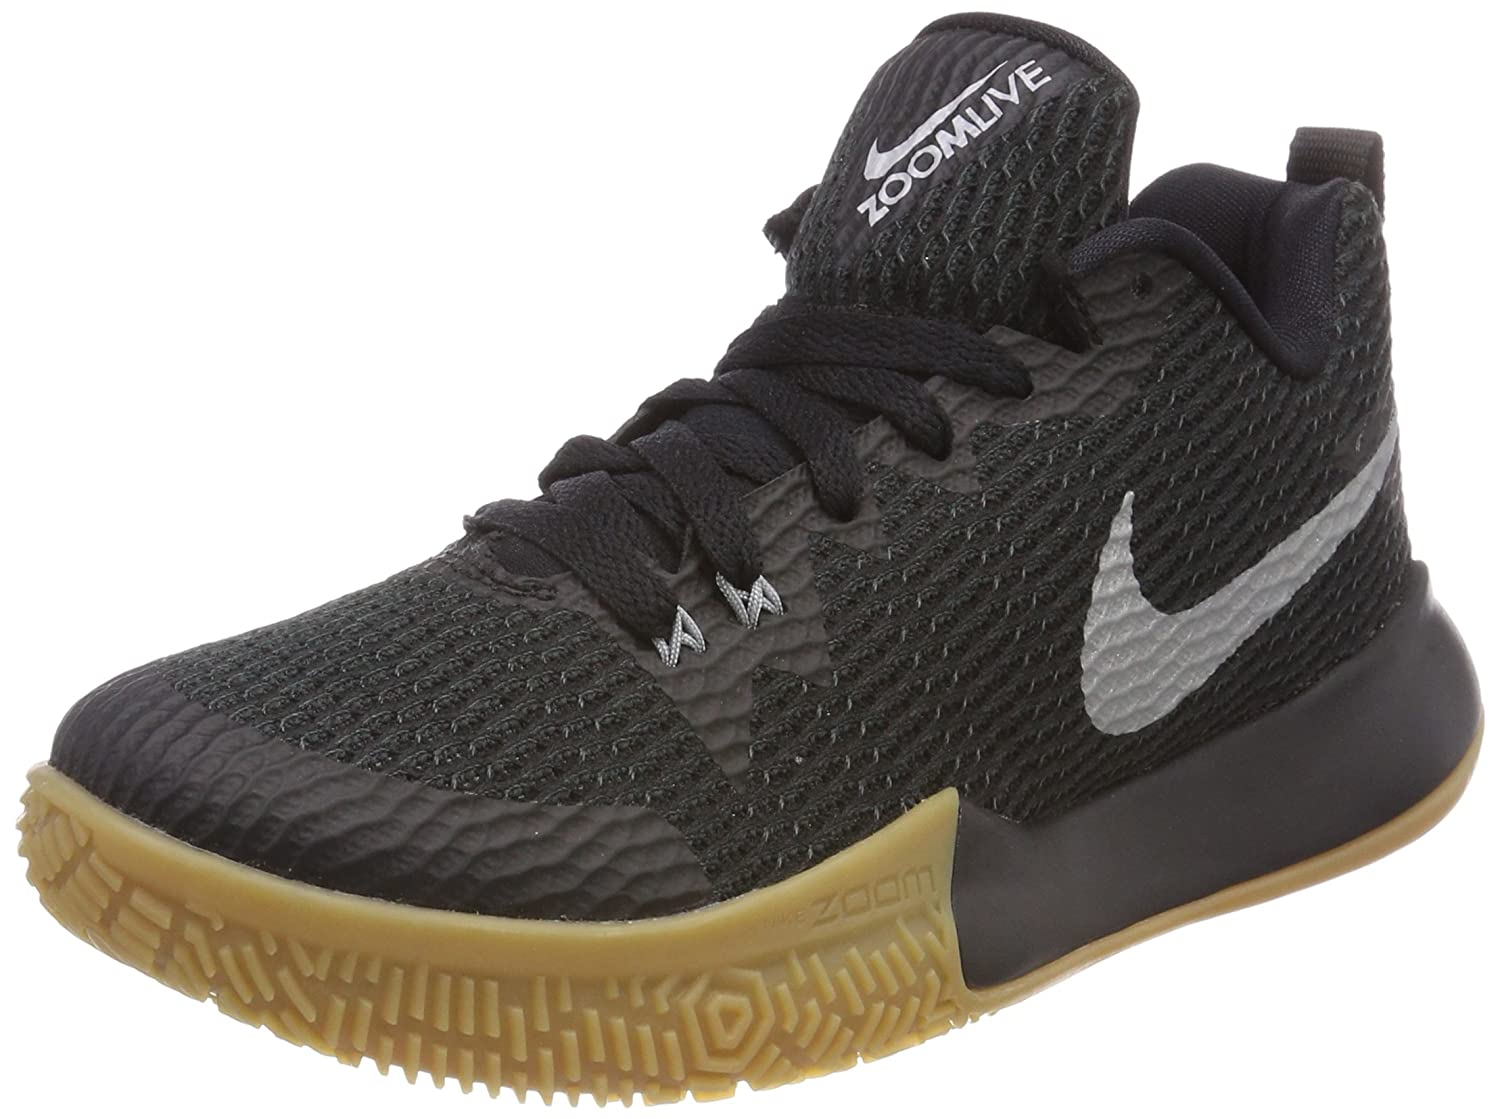 Nike Womens Zoom Trainers Live II Basketball Trainers Zoom AH7578 Sneakers Shoes 8 M US|Black Silver Gum 001 B074L7QH6X 9a74d2